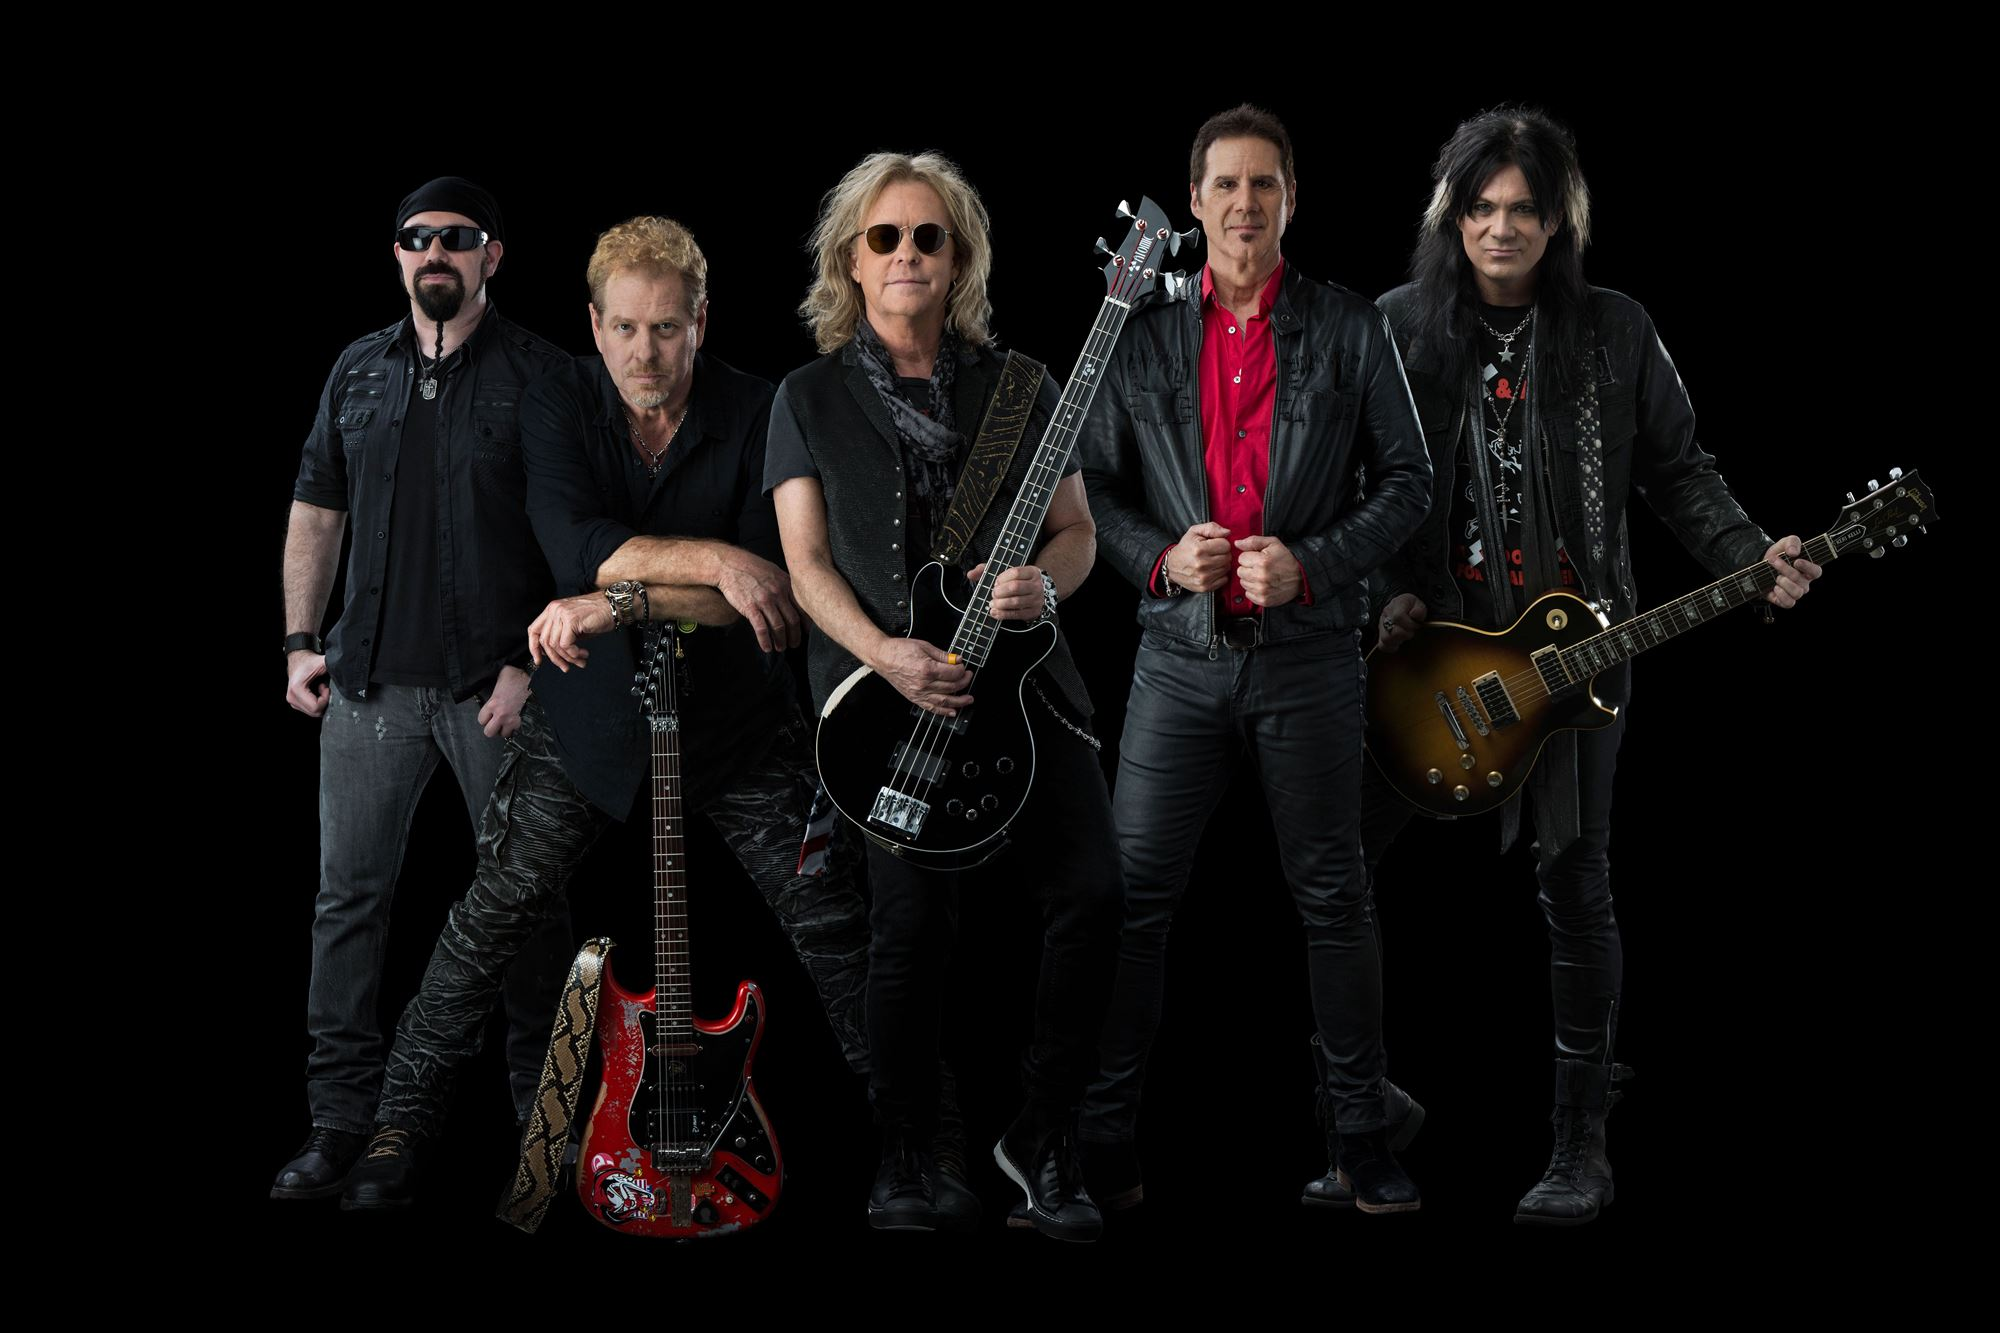 PRCA Rodeo w/ Night Ranger<br>Friday, Feb. 18, 2022 at 7 PM